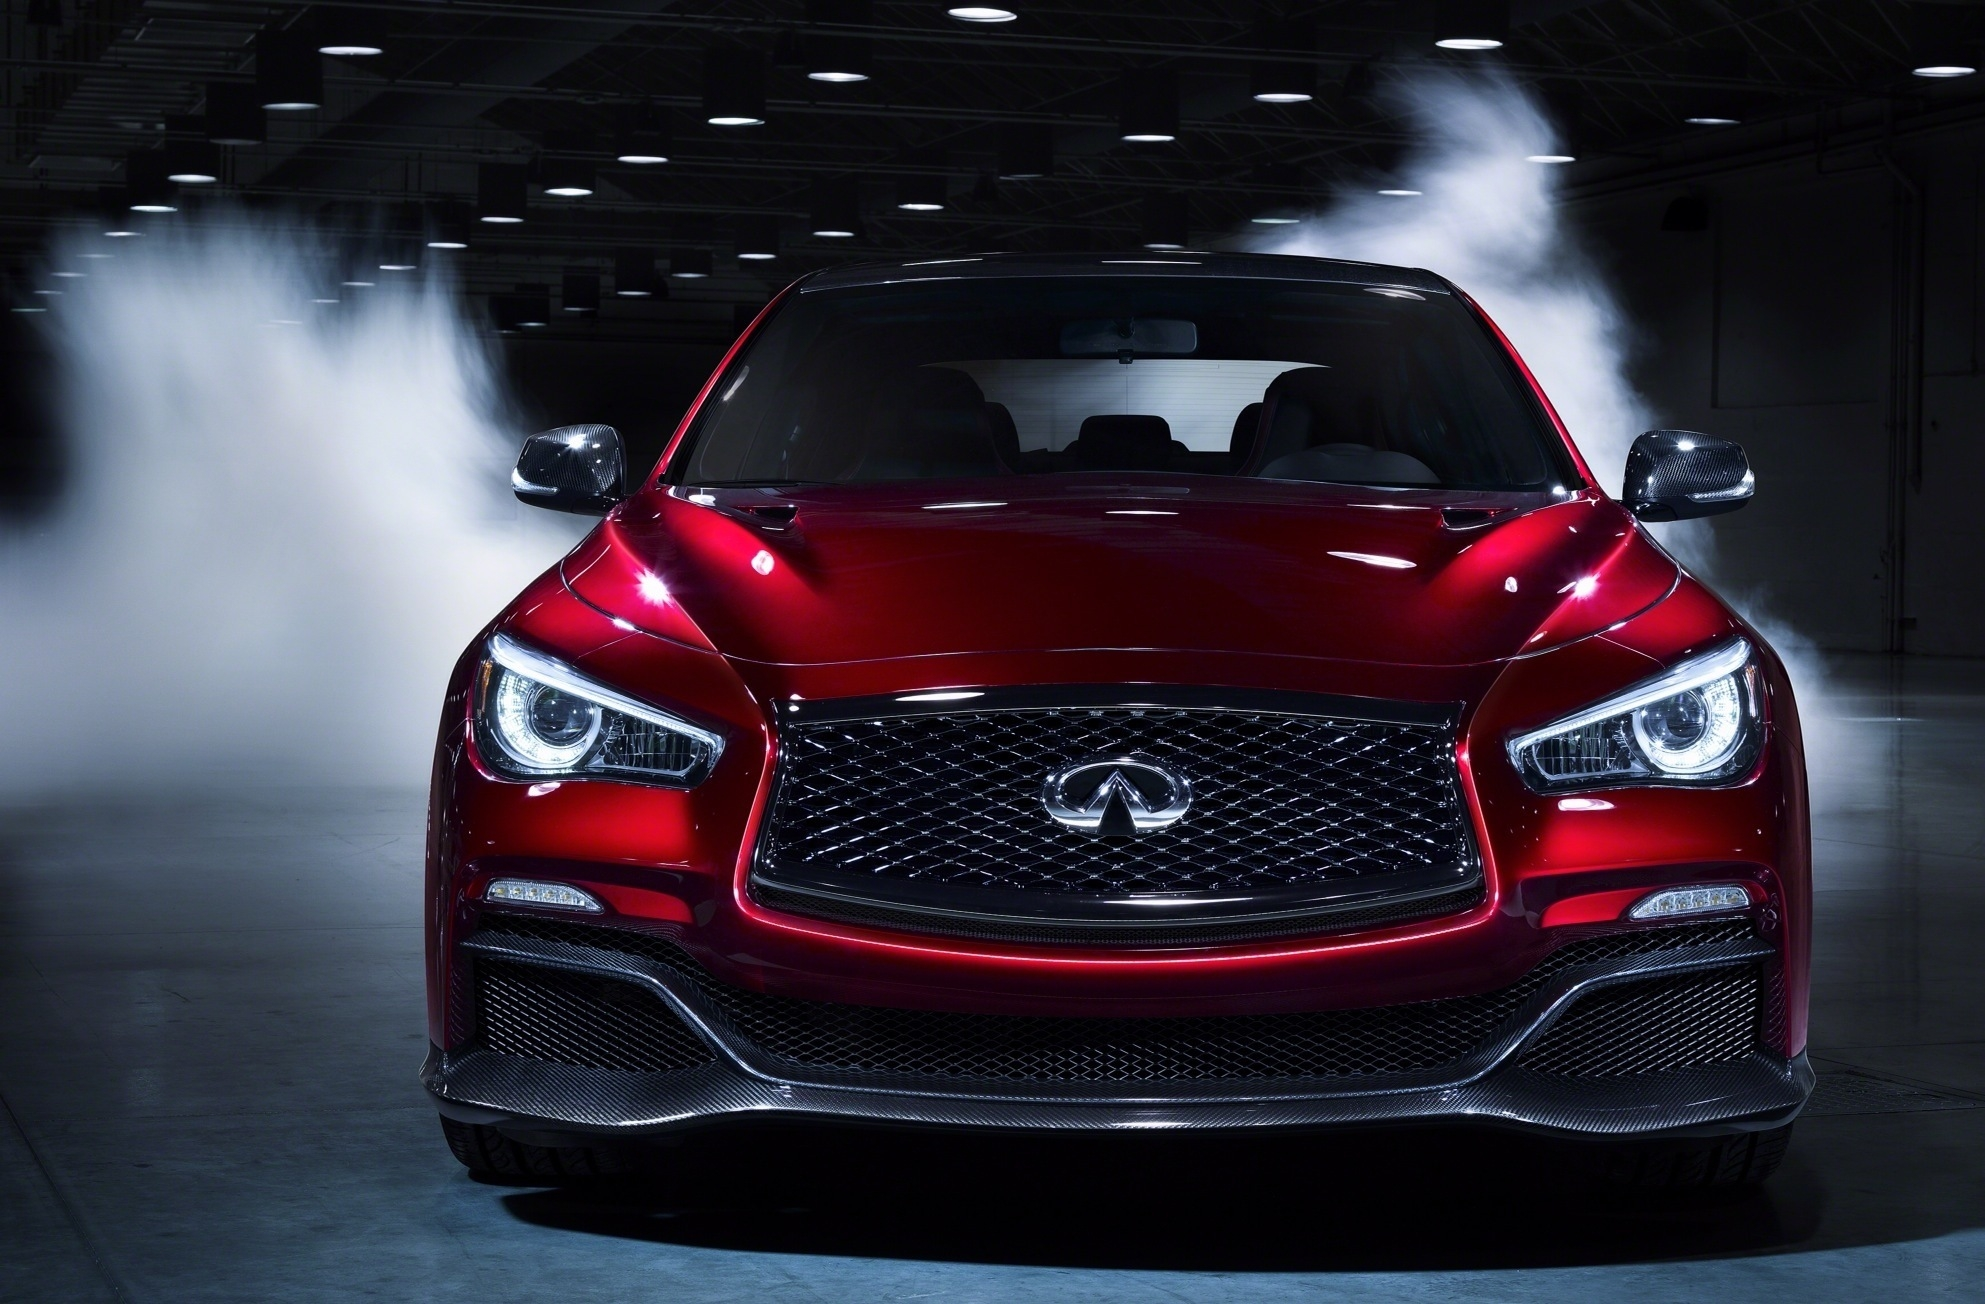 74 A 2020 Infiniti Q50 Coupe Eau Rouge New Review